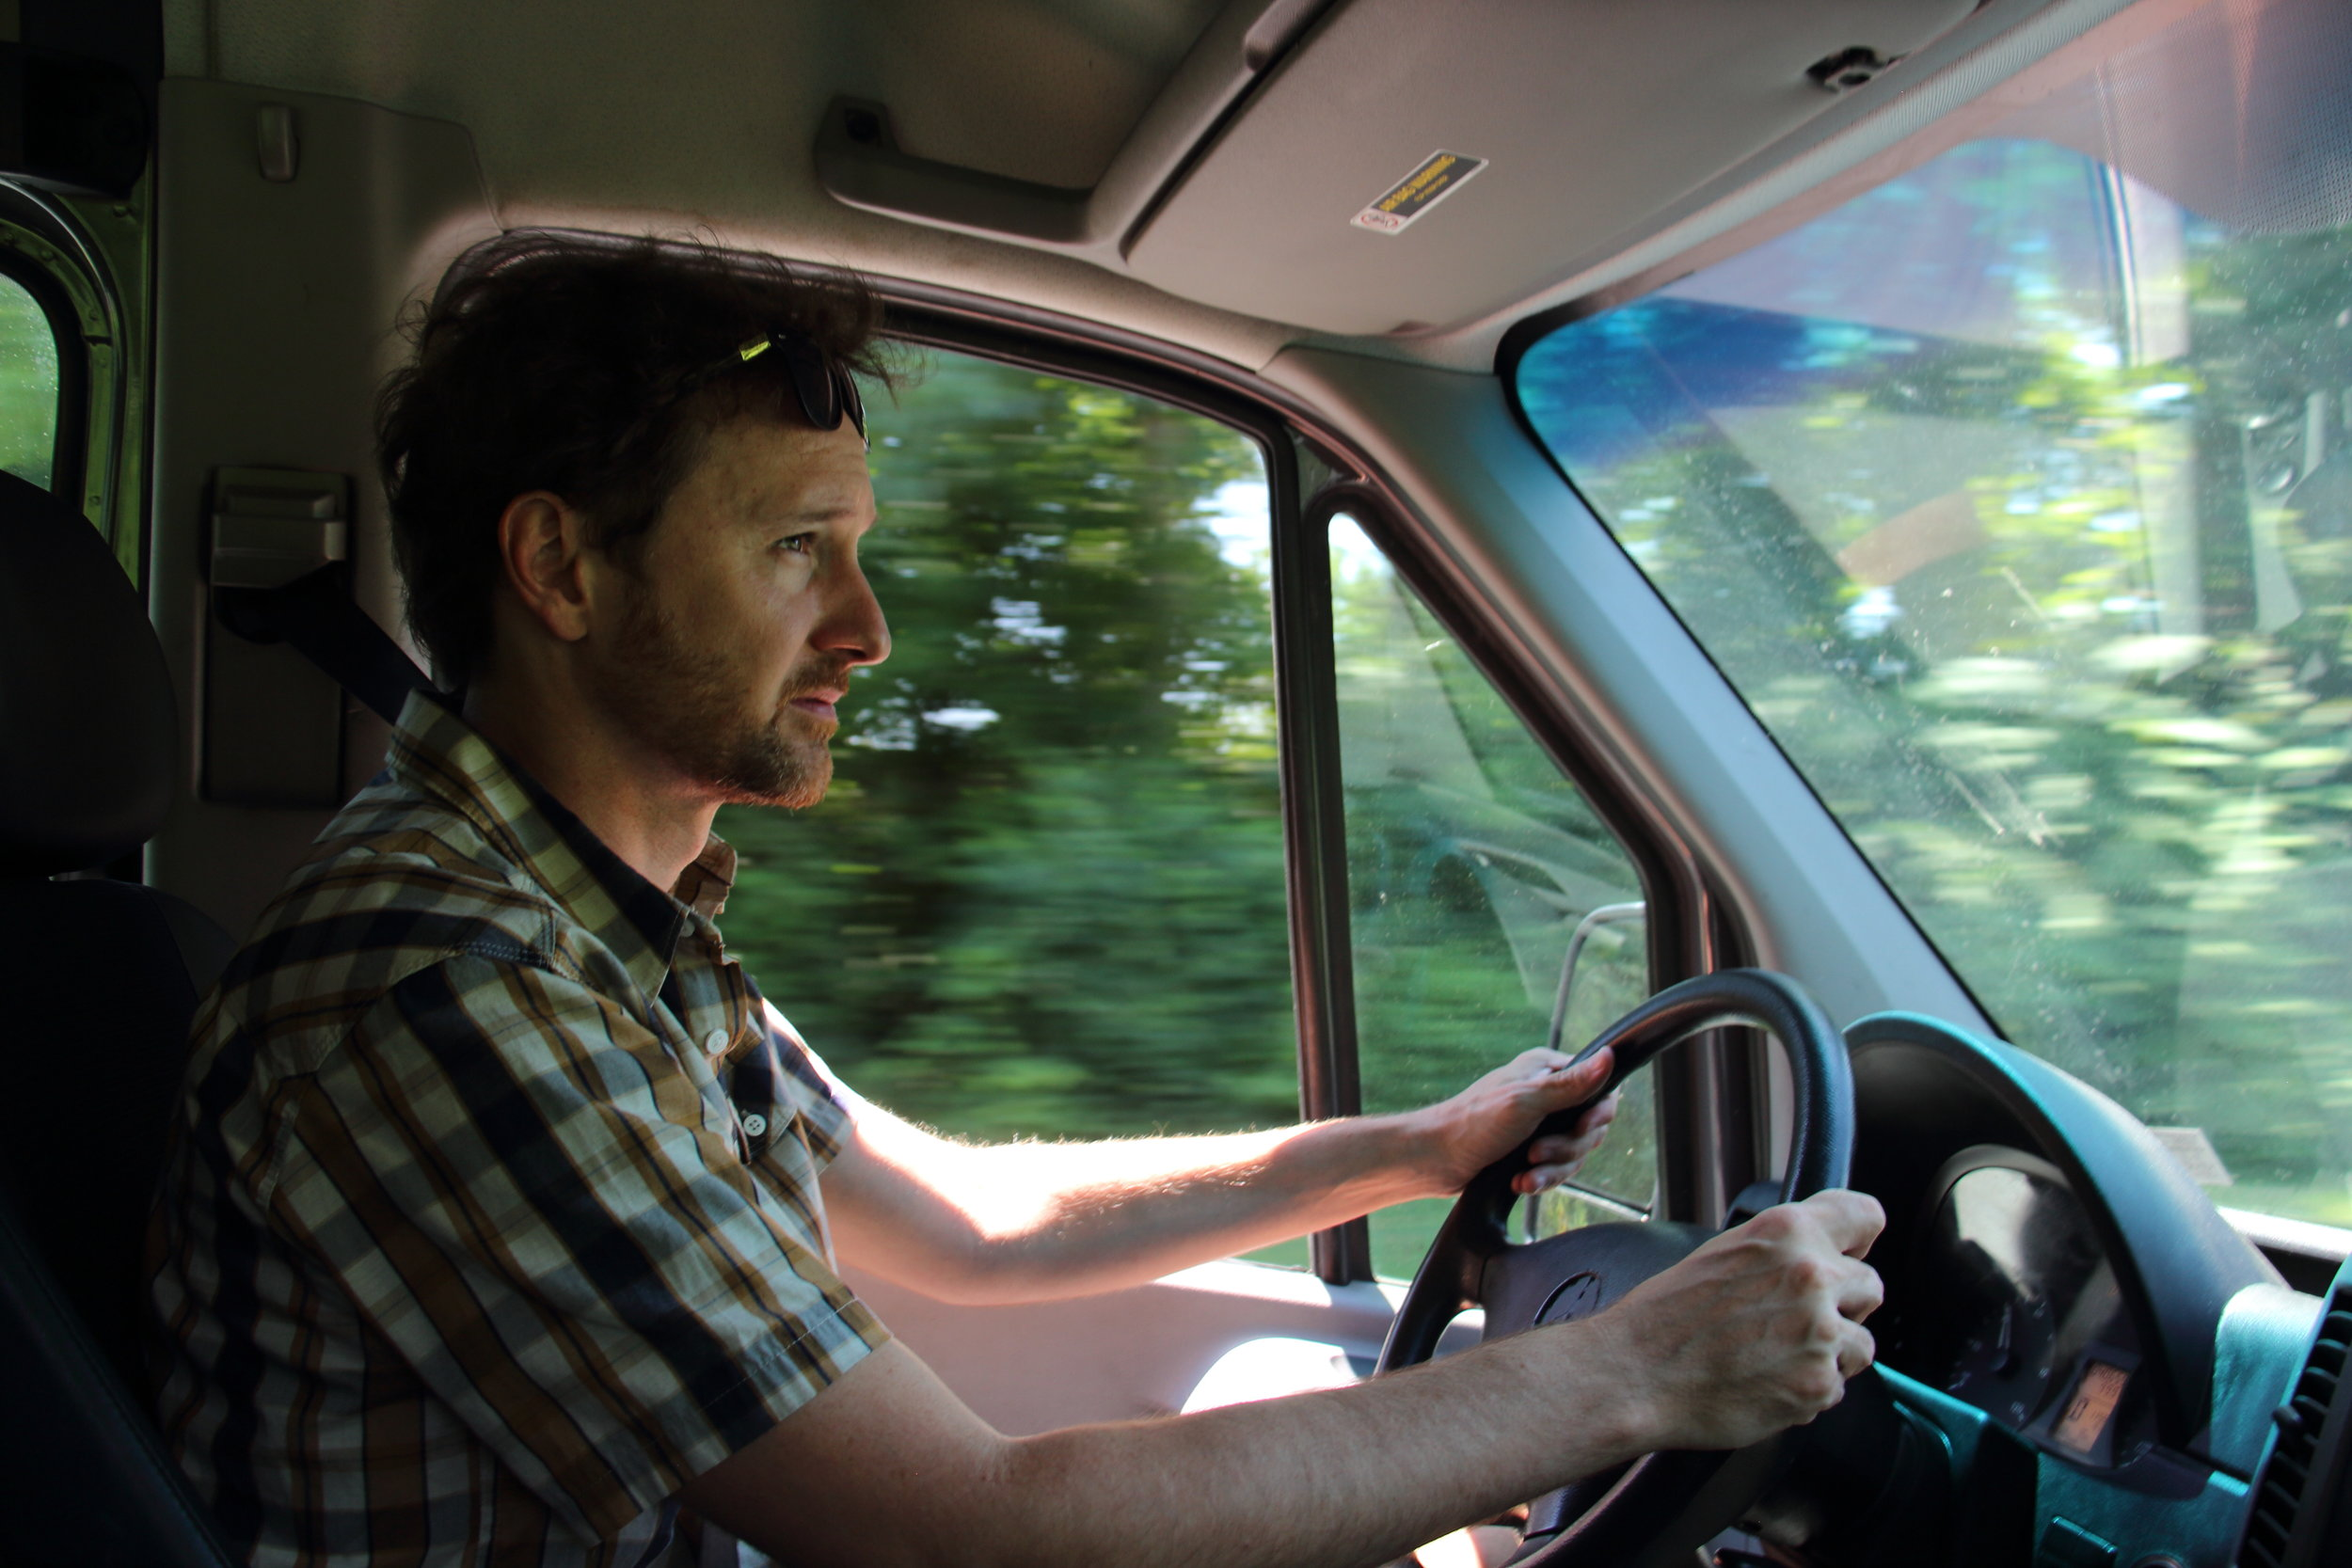 Test driving the van. We didn't get to go on the highway, but still managed to punch it a few times.